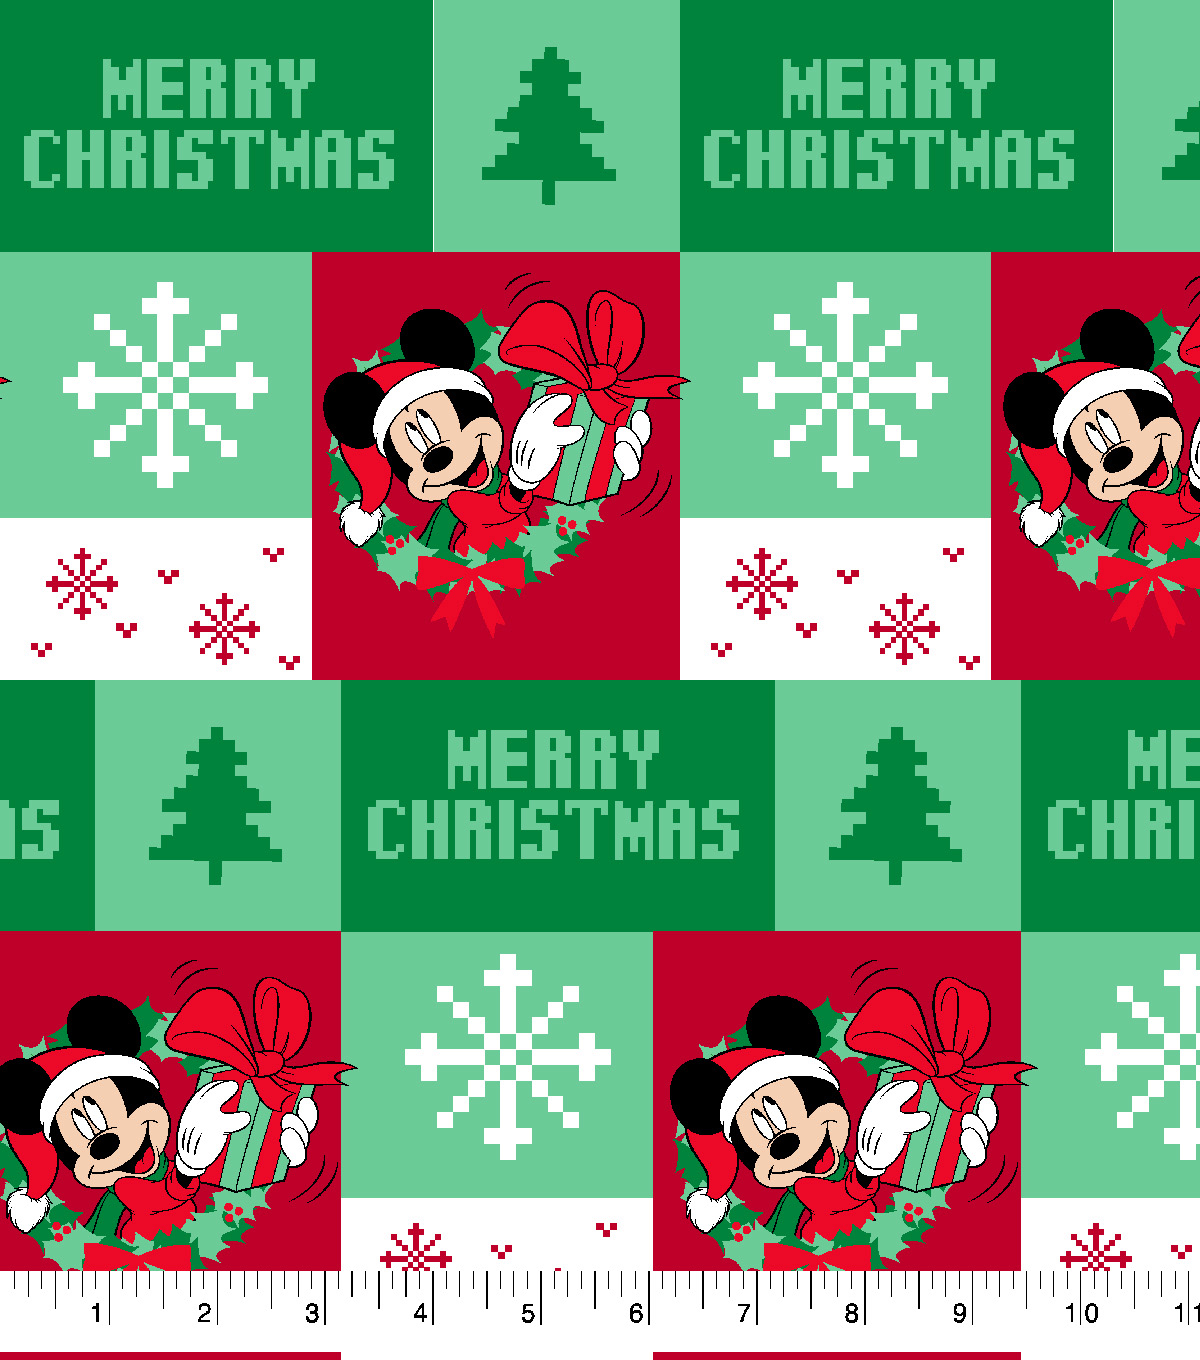 disney mickey mouse cotton fabric ugly sweater - Disney Christmas Fabric